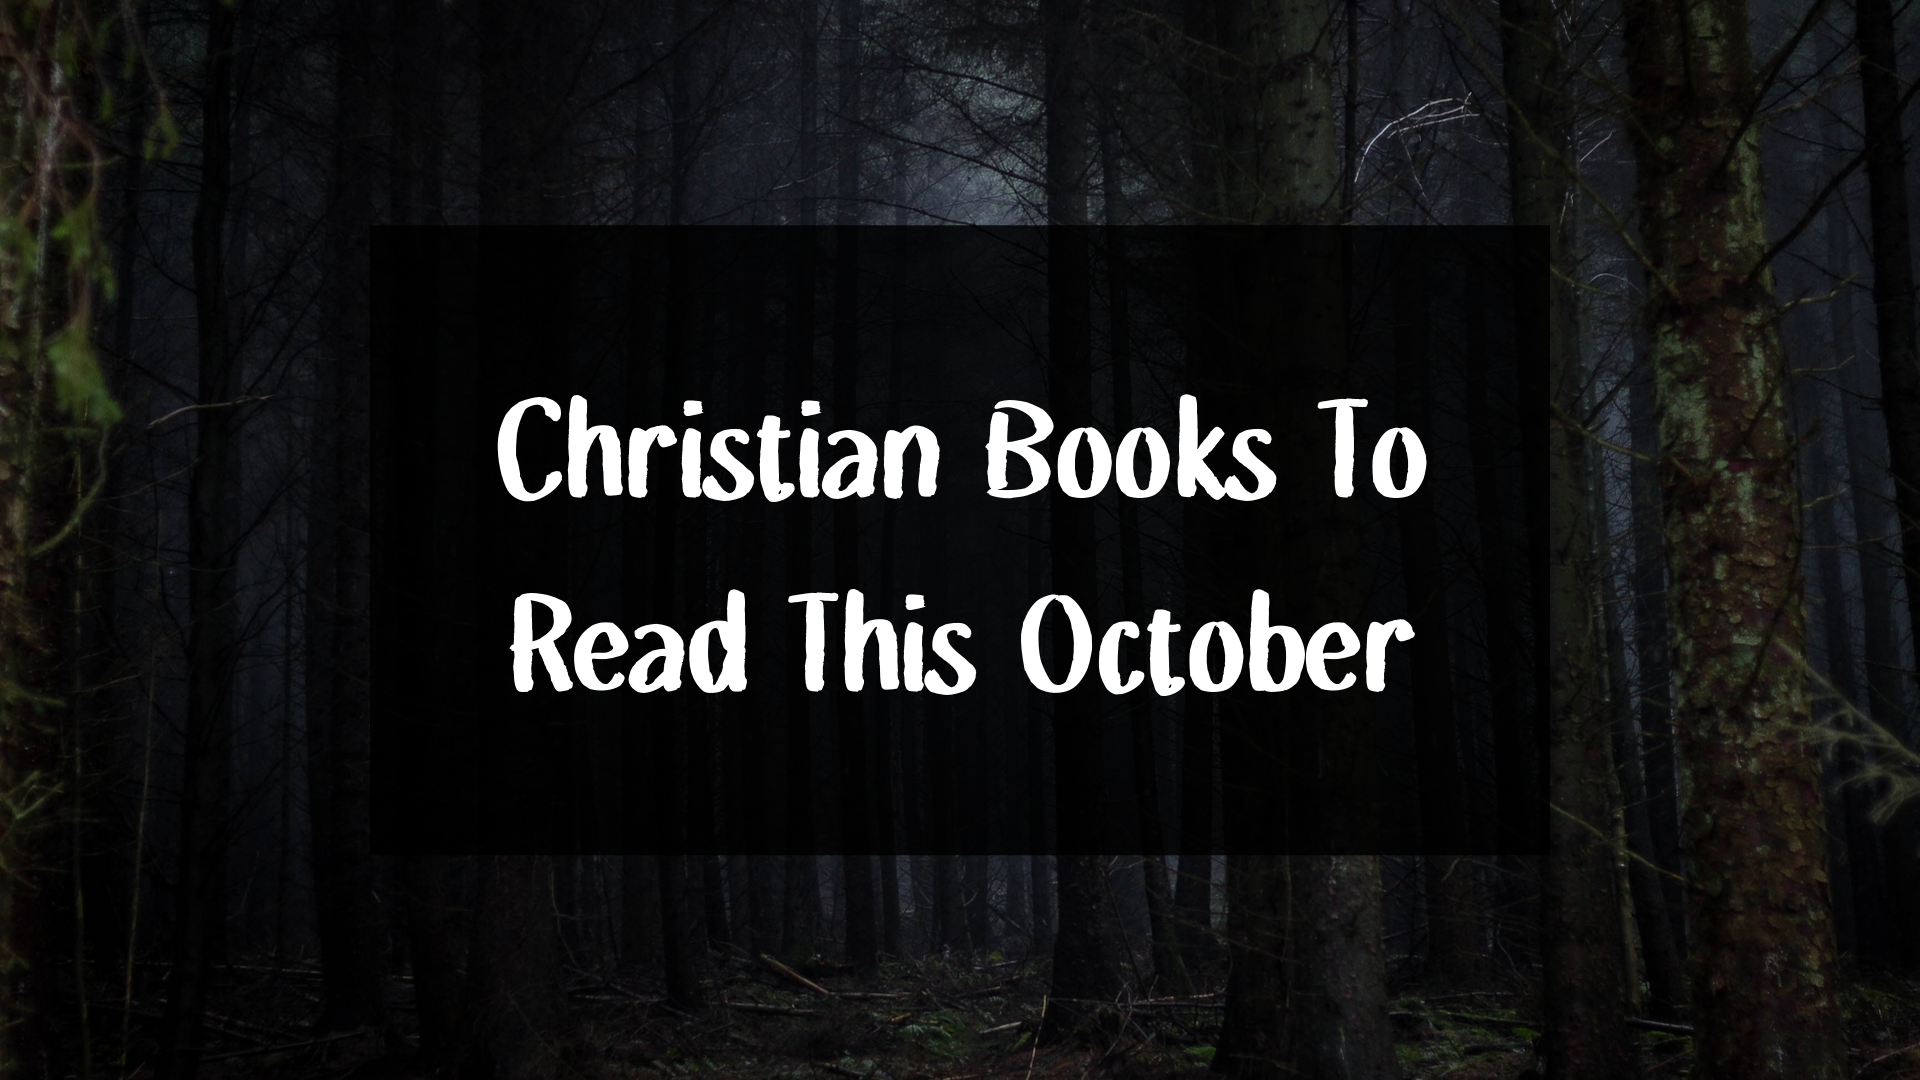 Christian books to read this halloween